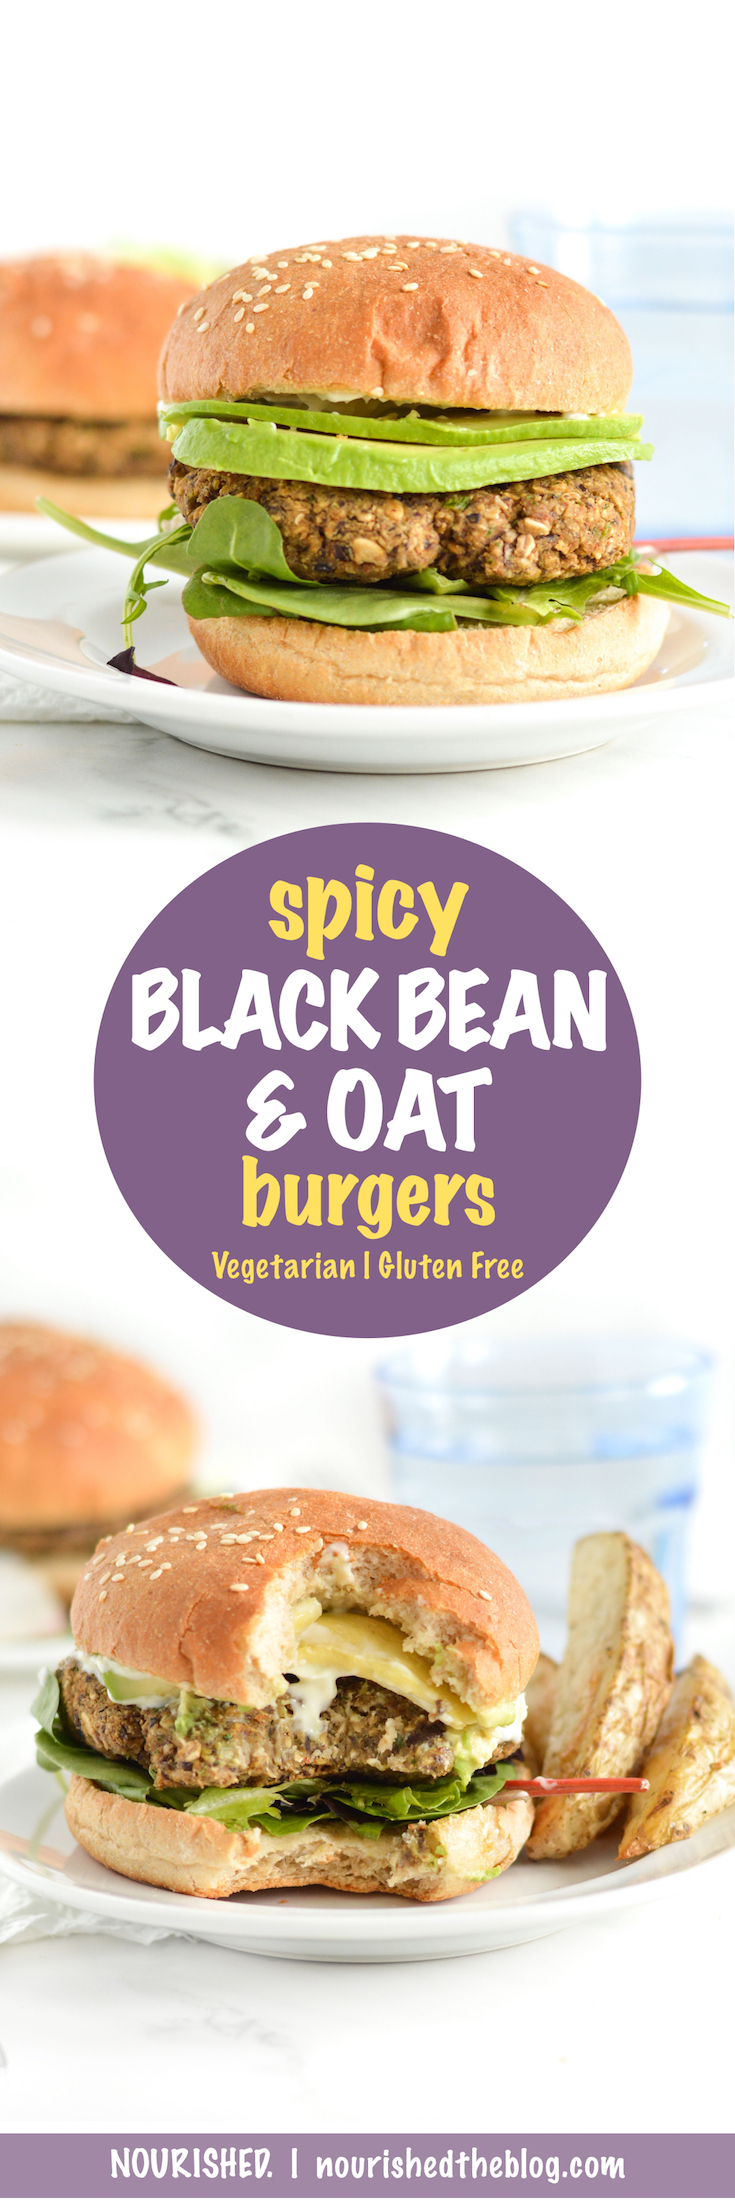 These Gluten Free Spicy Black Bean Oat Burgers are made oh-so easy with oats, canned black beans, garlic, onion, cumin and a little kick of heat. The perfect gluten free and vegetarian option for your next Meatless Monday!